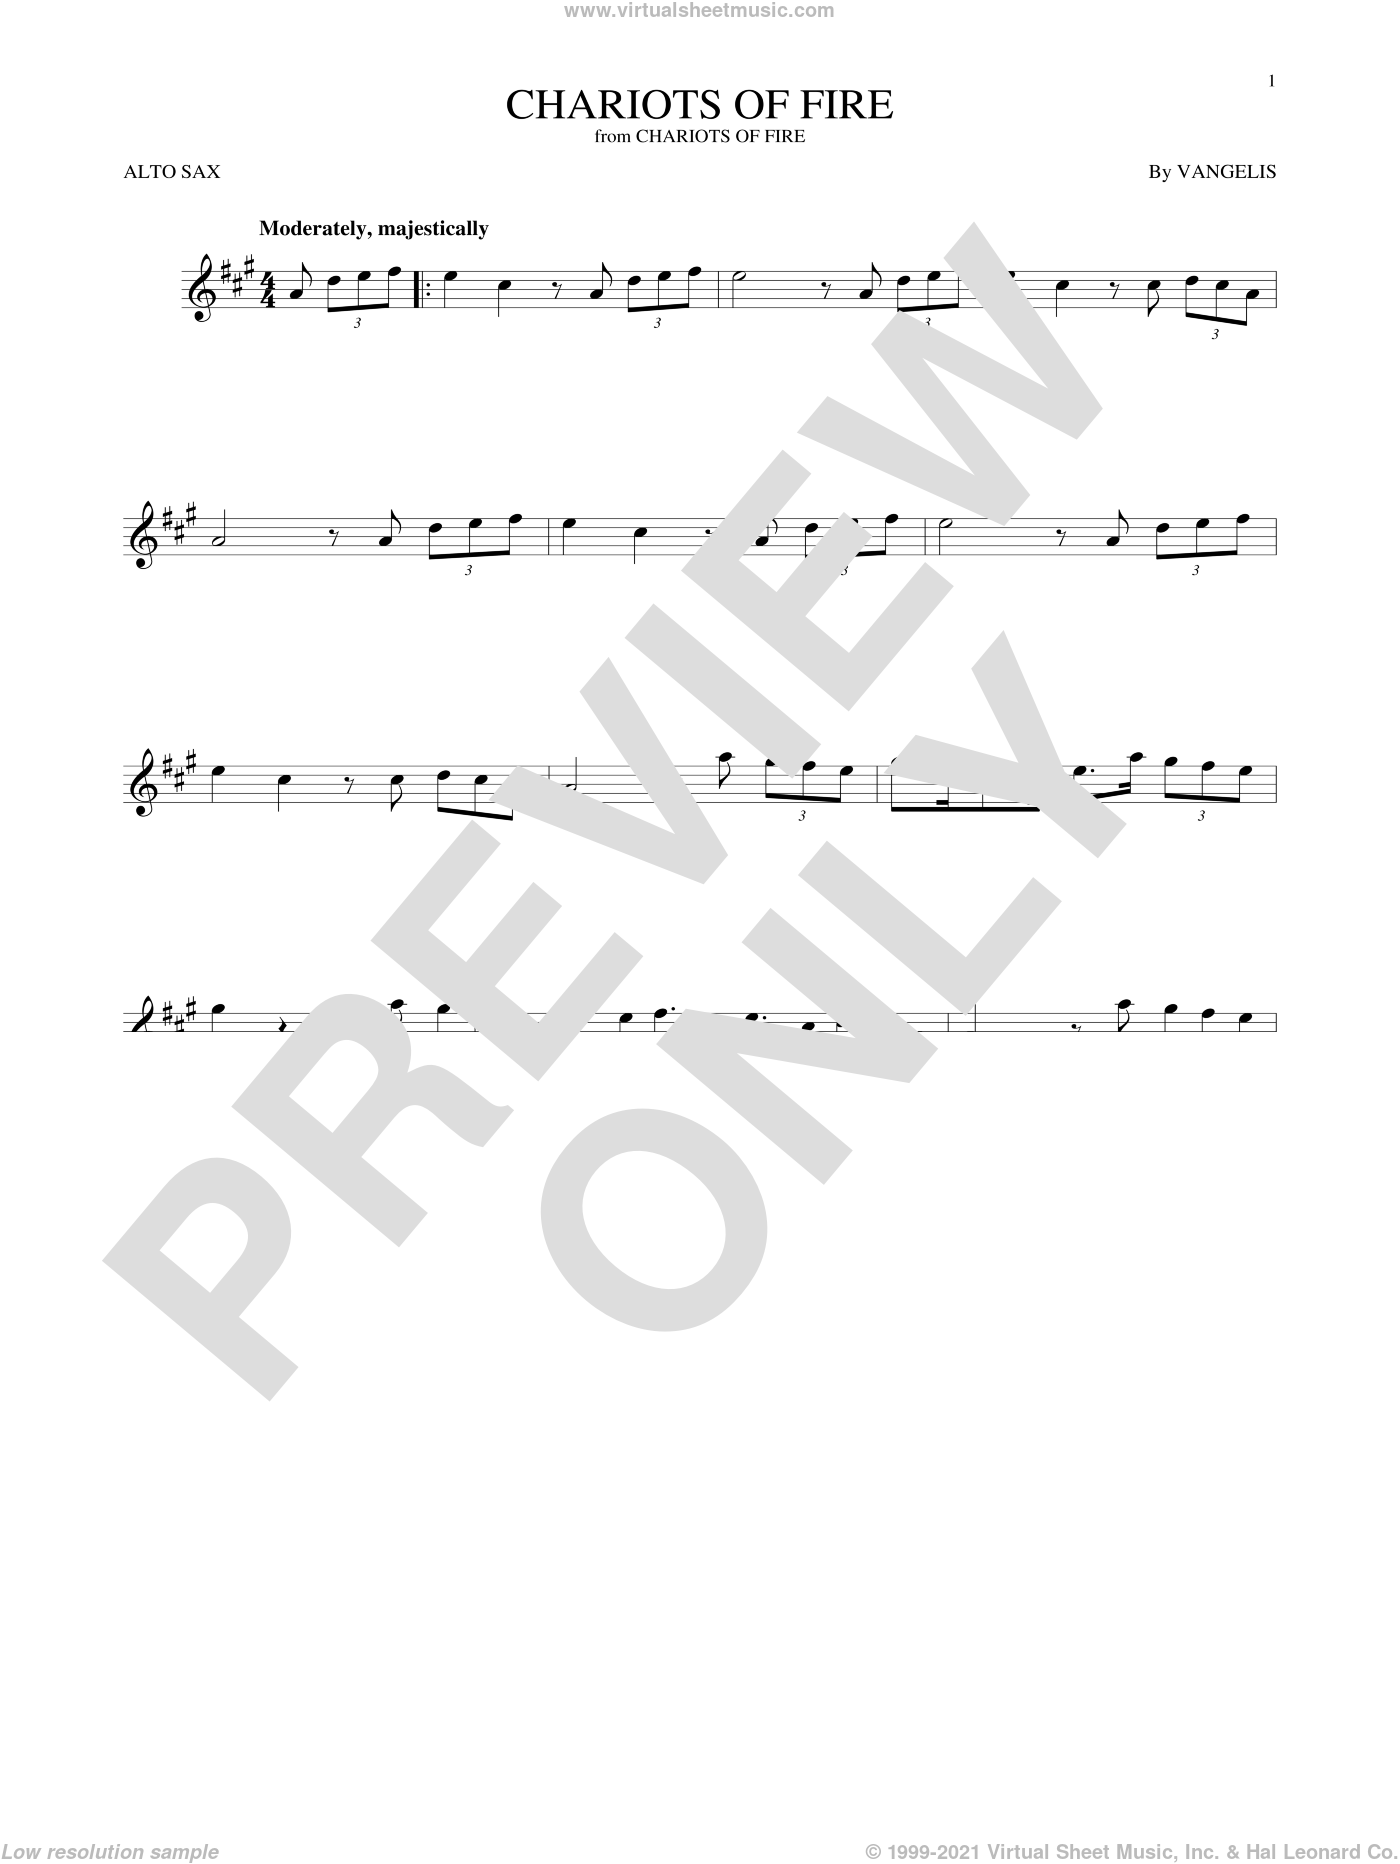 Chariots Of Fire sheet music for alto saxophone solo ( Sax) by Vangelis. Score Image Preview.